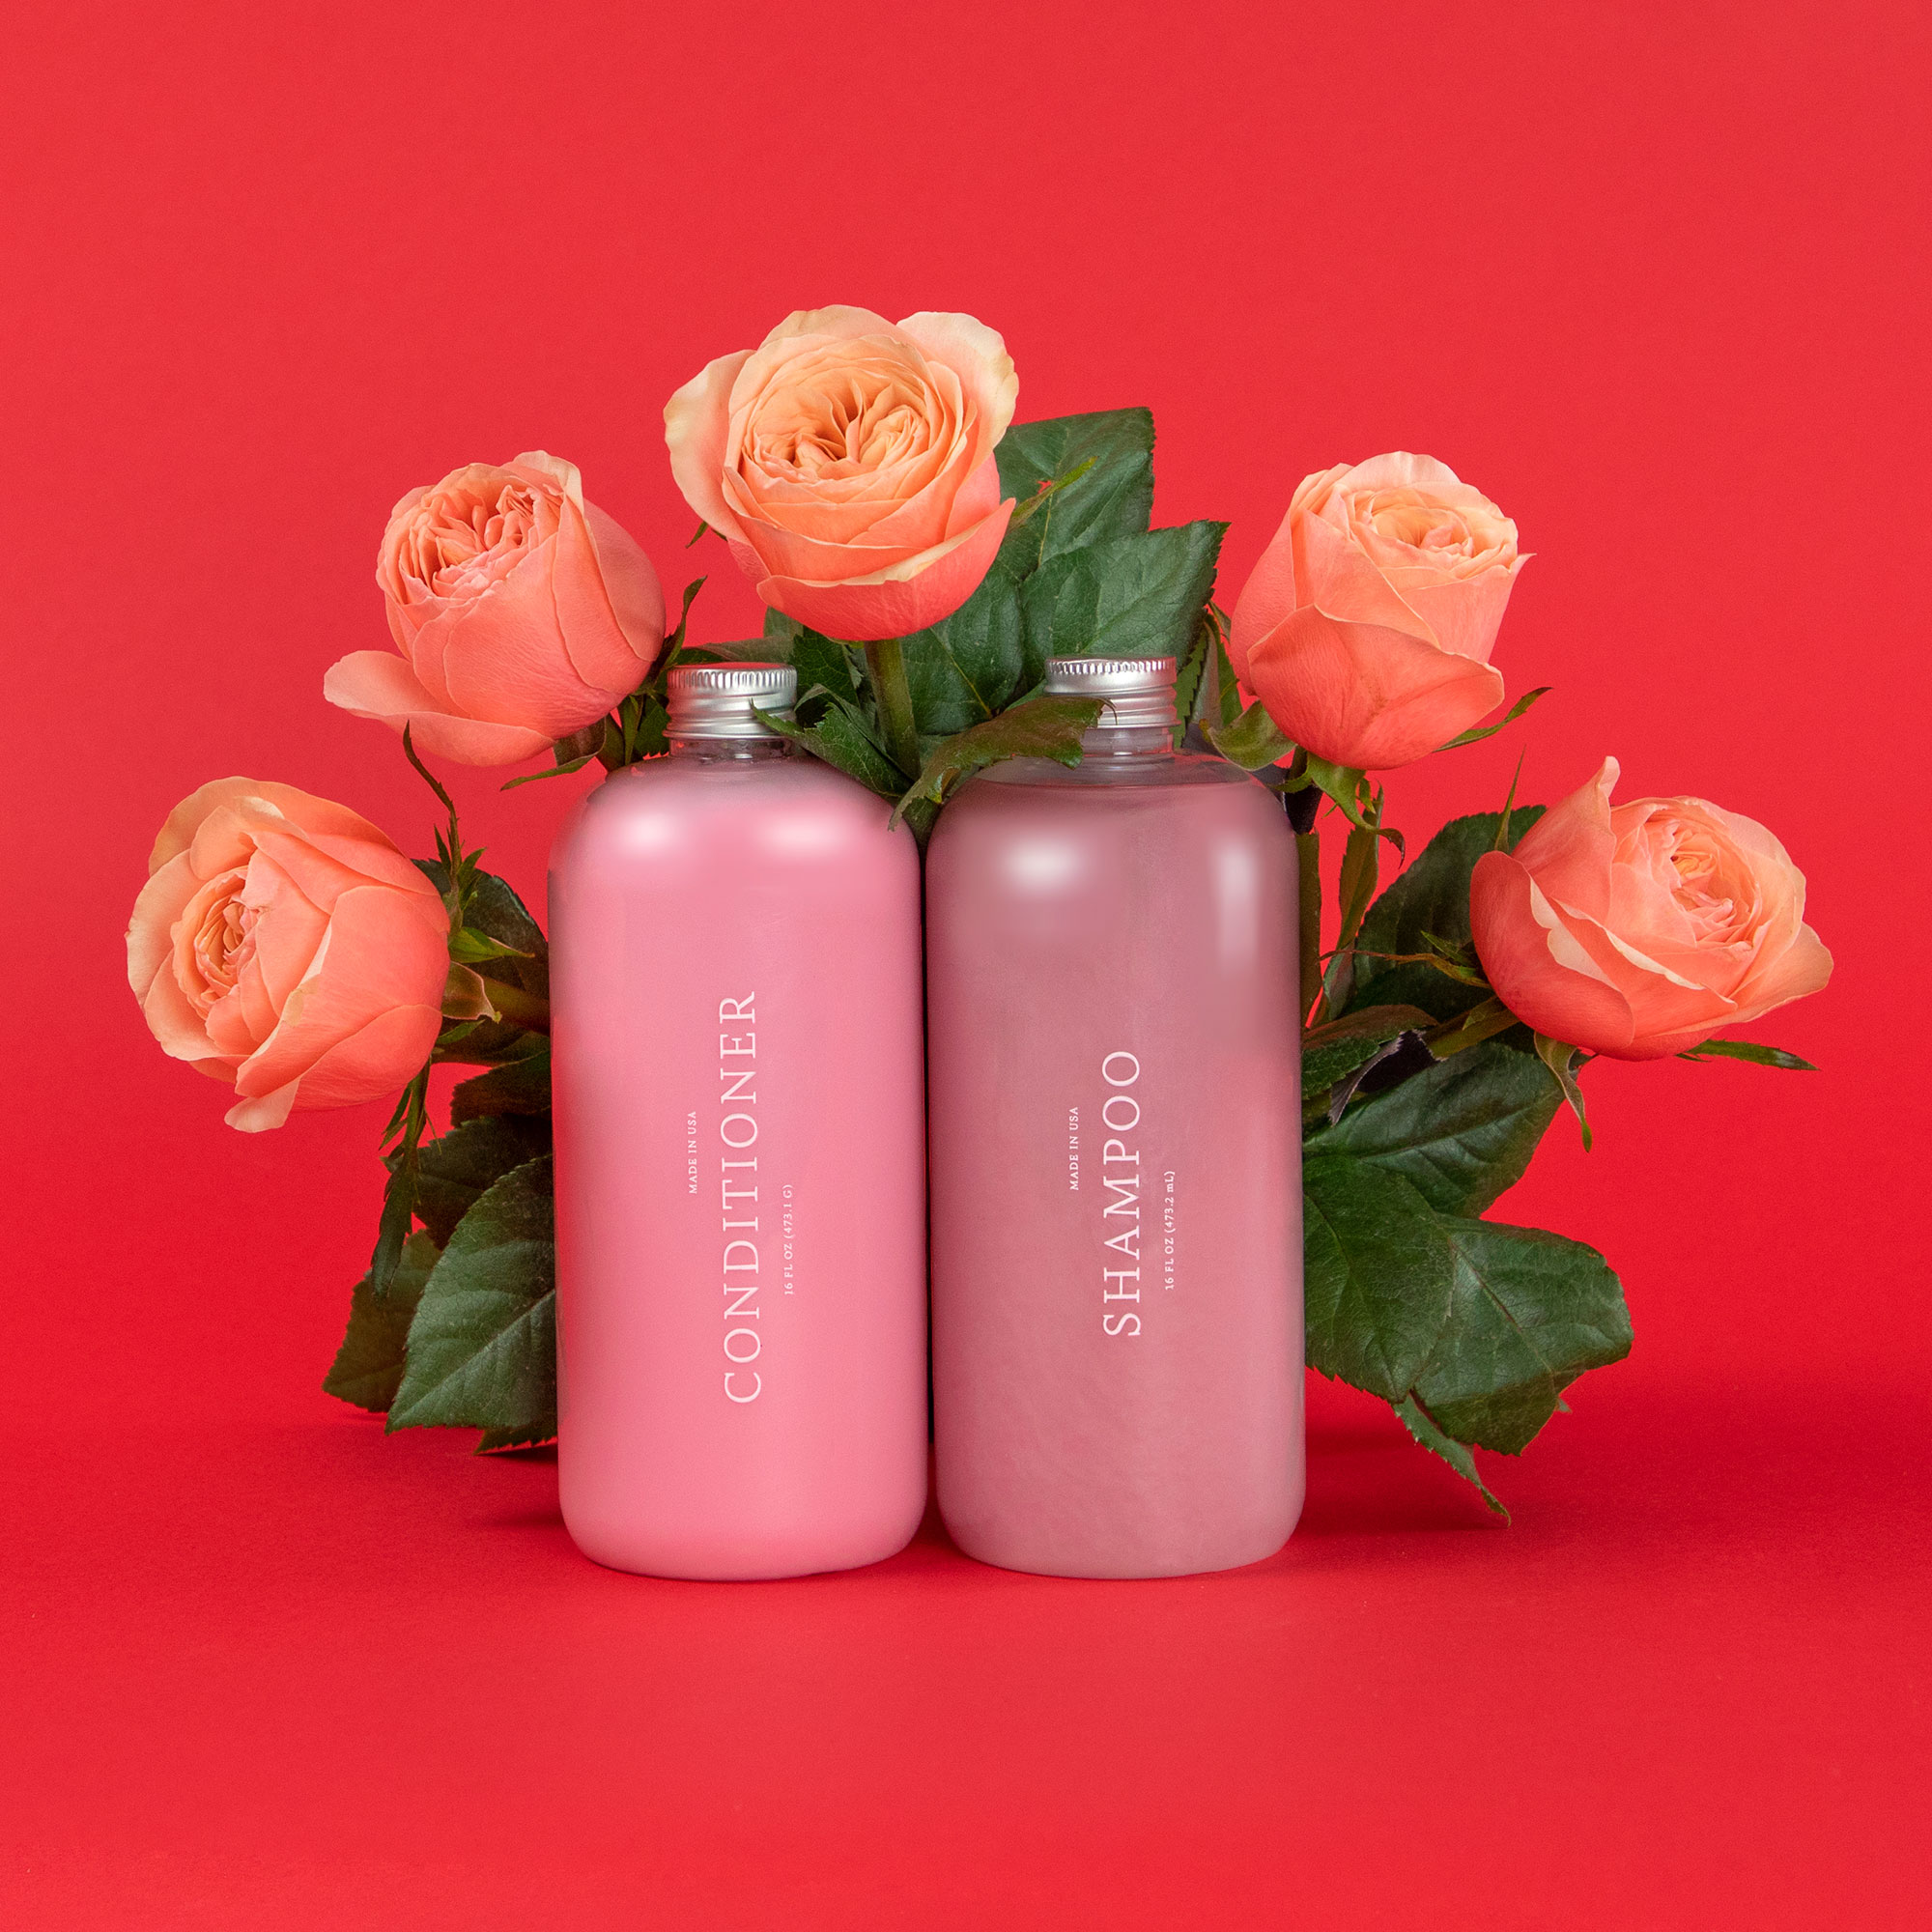 Valentine's Day Gift Guide 2019: Beauty and Fashion Ideas for the Lady in Your Life - Good hair days are the gift that keeps on giving, and this customizable brand allows her to create personalized shampoo and conditioner formulas that are perfect for her hair type. from $36, functionofbeauty.com